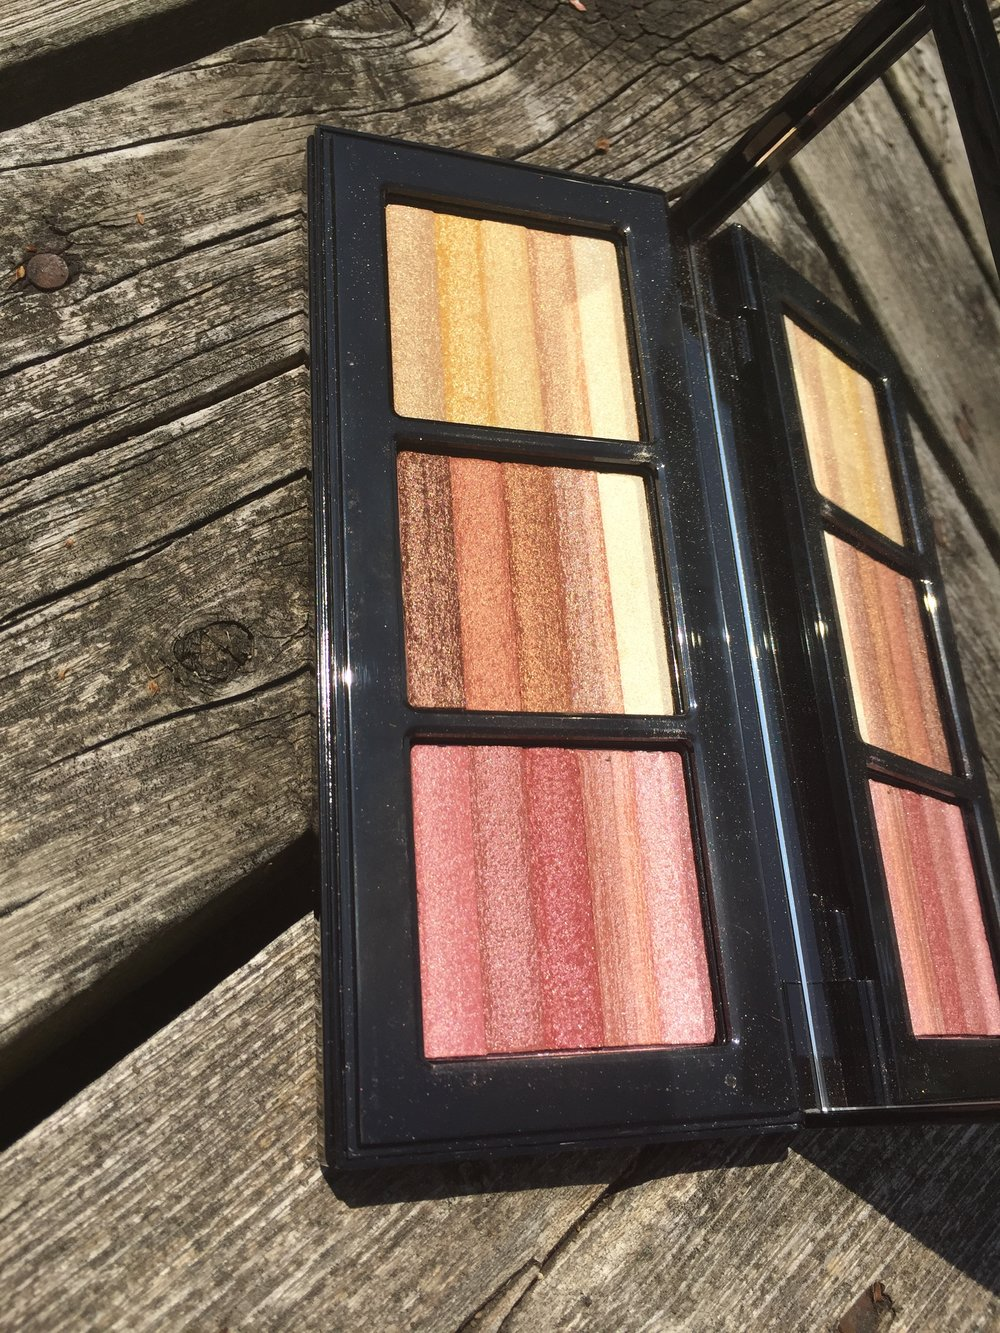 bobbi brown |bobbi to glow shimmer brick palette